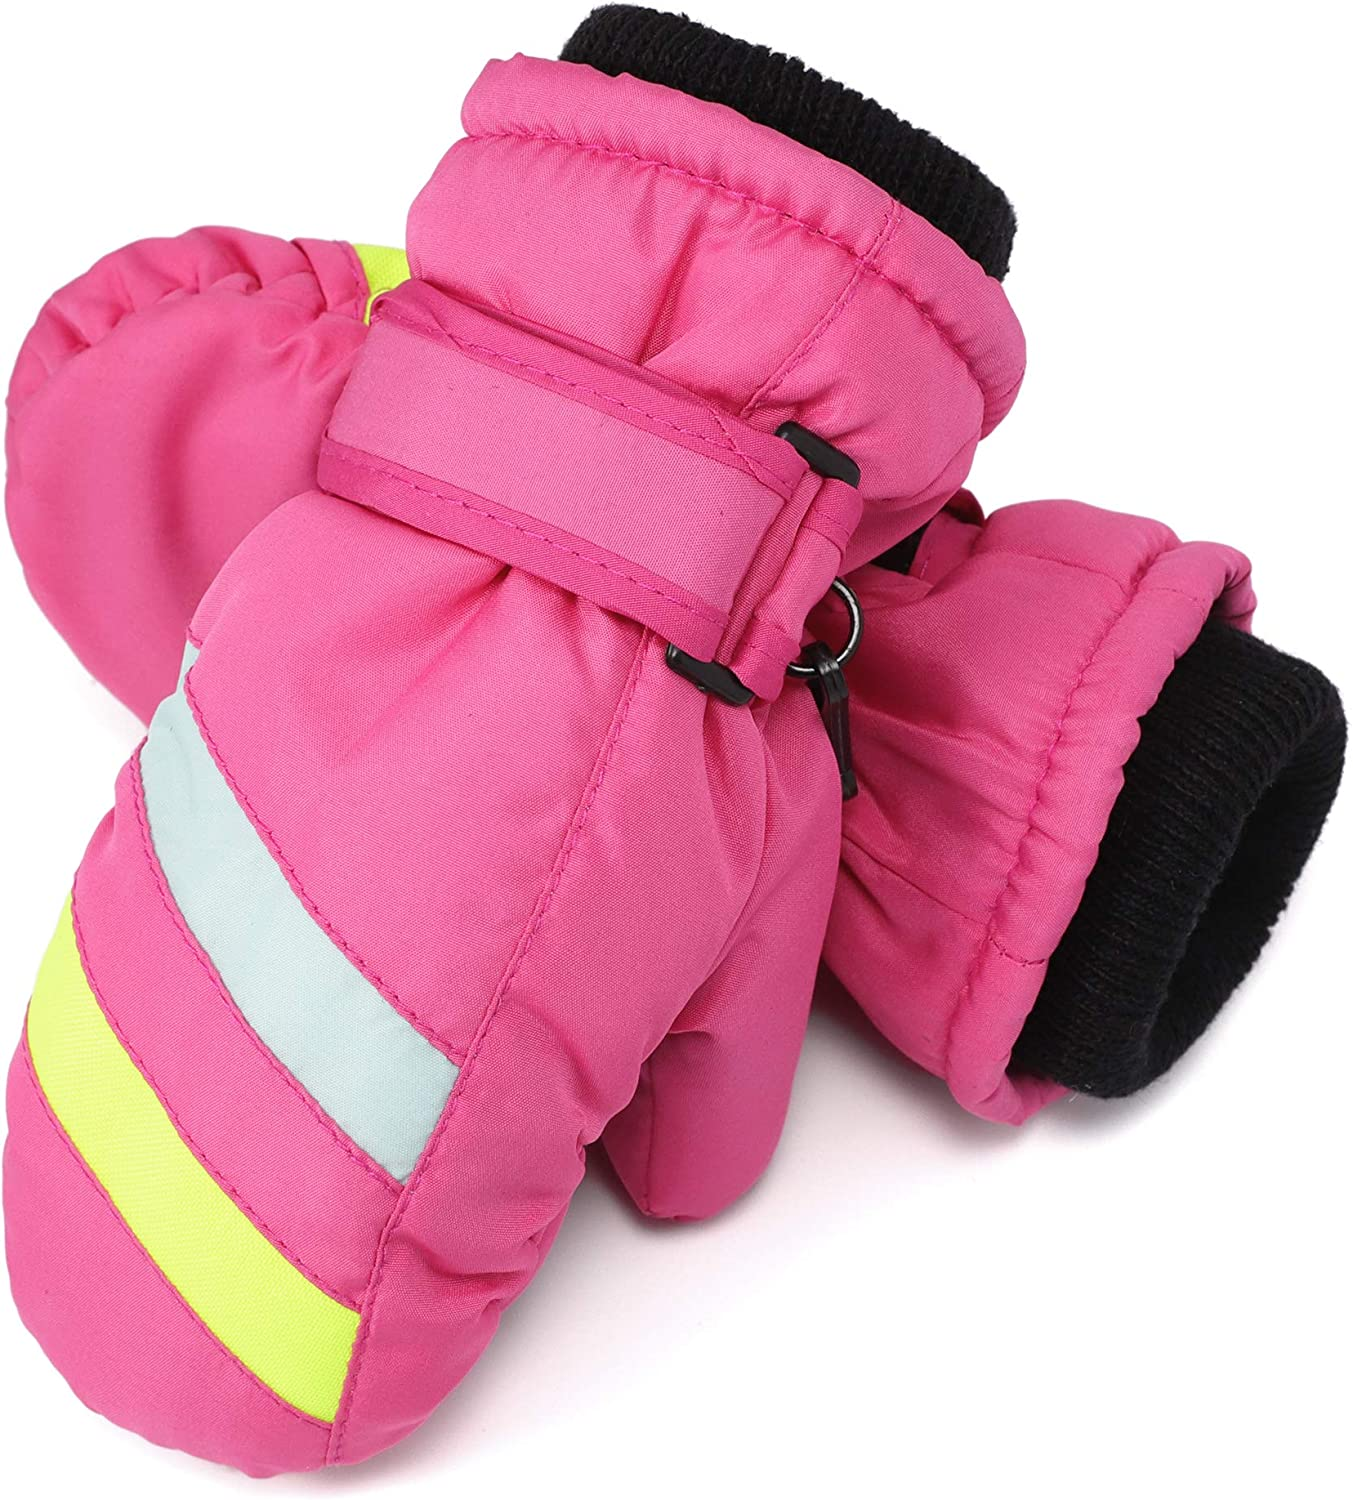 Flammi Kids Ski Mittens Fleece Lined Winter Snow Mittens Water-Resistant...